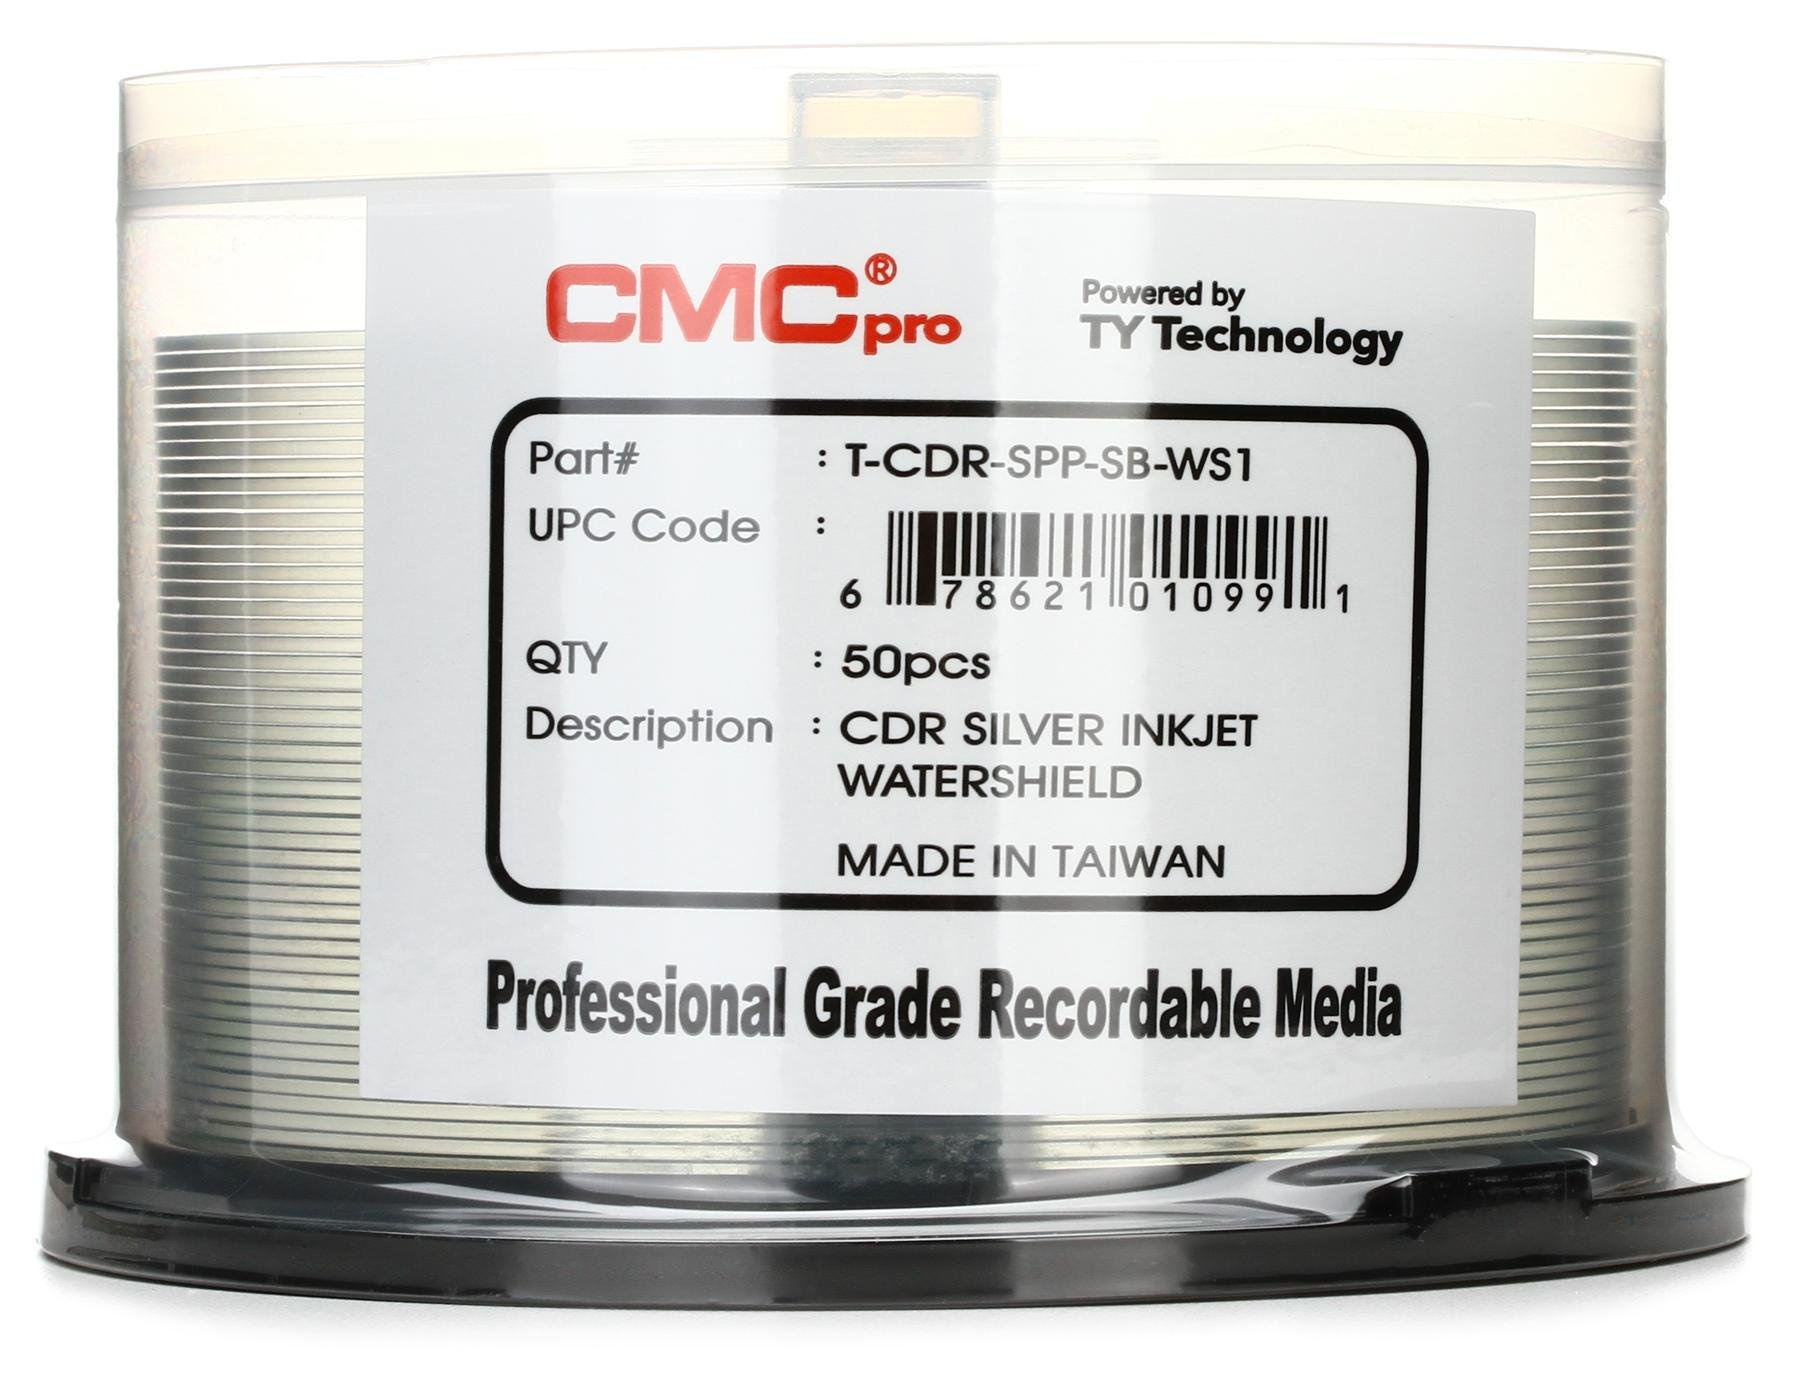 Cmc Pro Watershield Silver Water Resistant Inkjet Printable Cd-R - Free Printable Smile Your On Camera